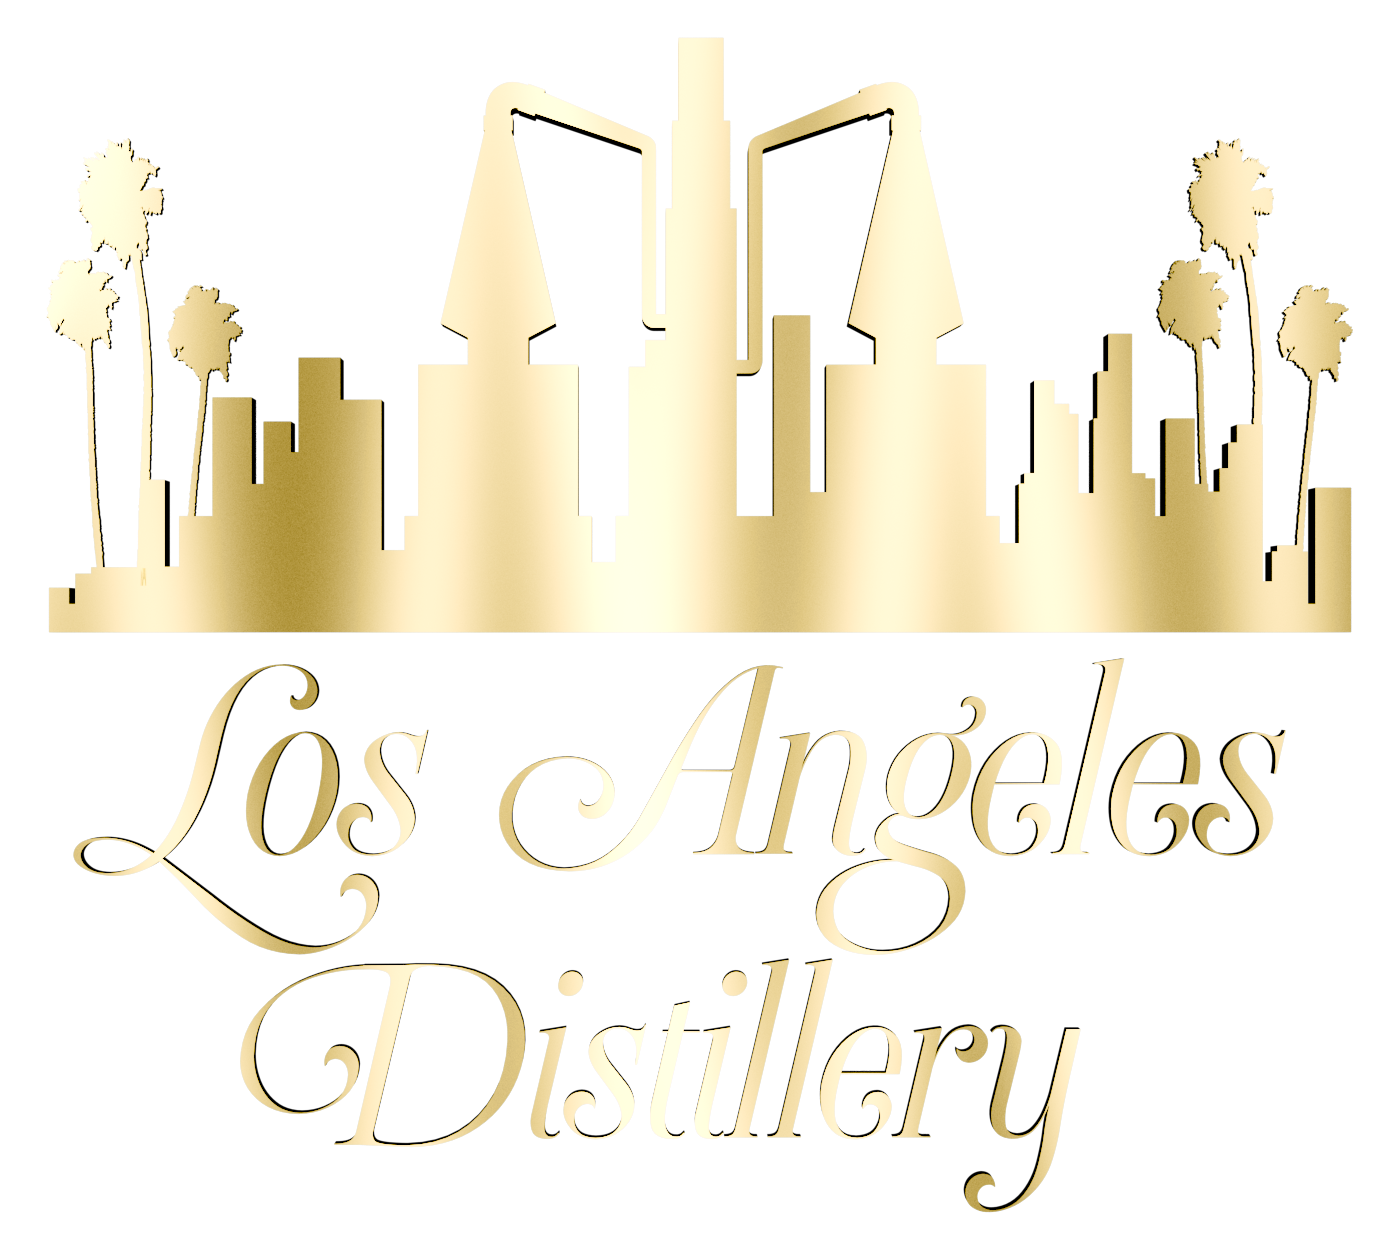 Los Angeles Distillery